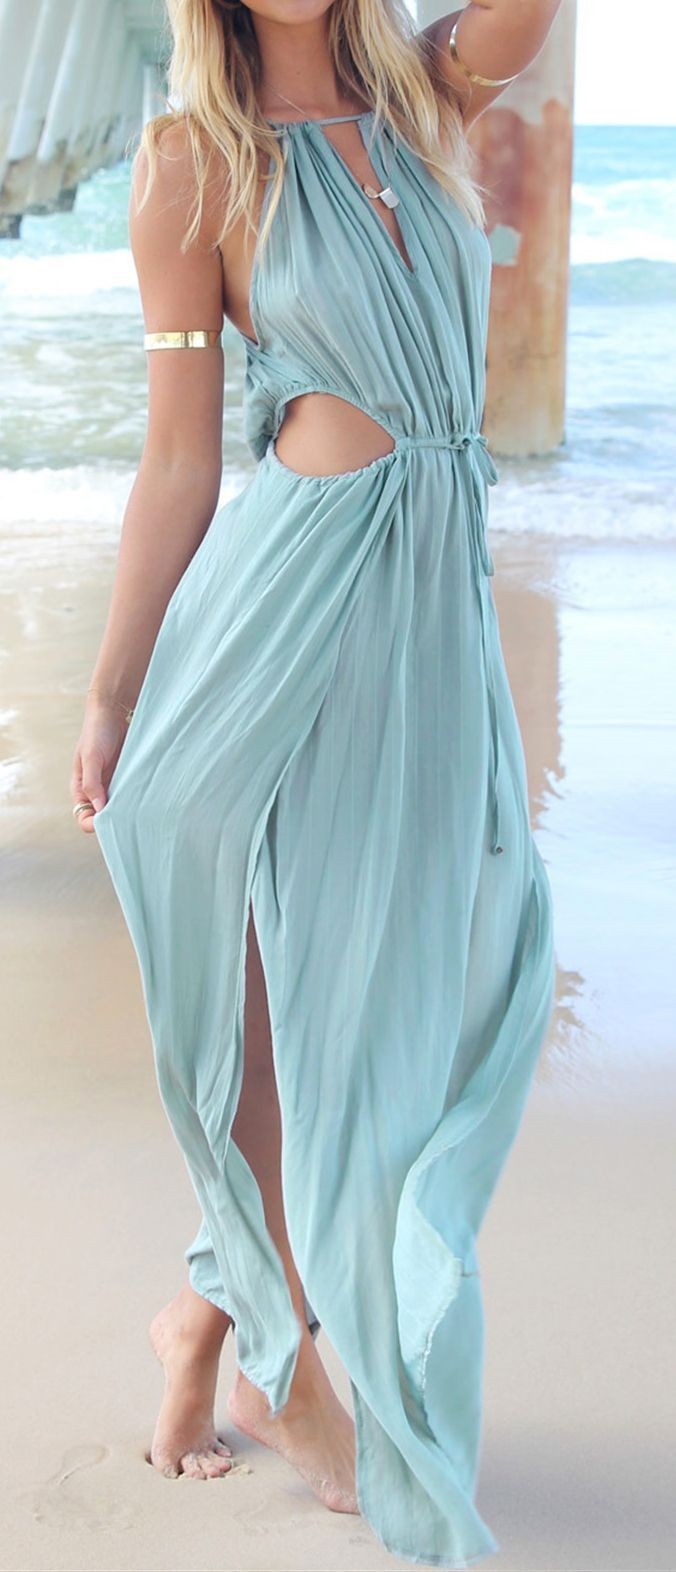 Mermaid maxi dresses in boho style. For more followwww.pinterest.com/ninayayand stay positively #inspired